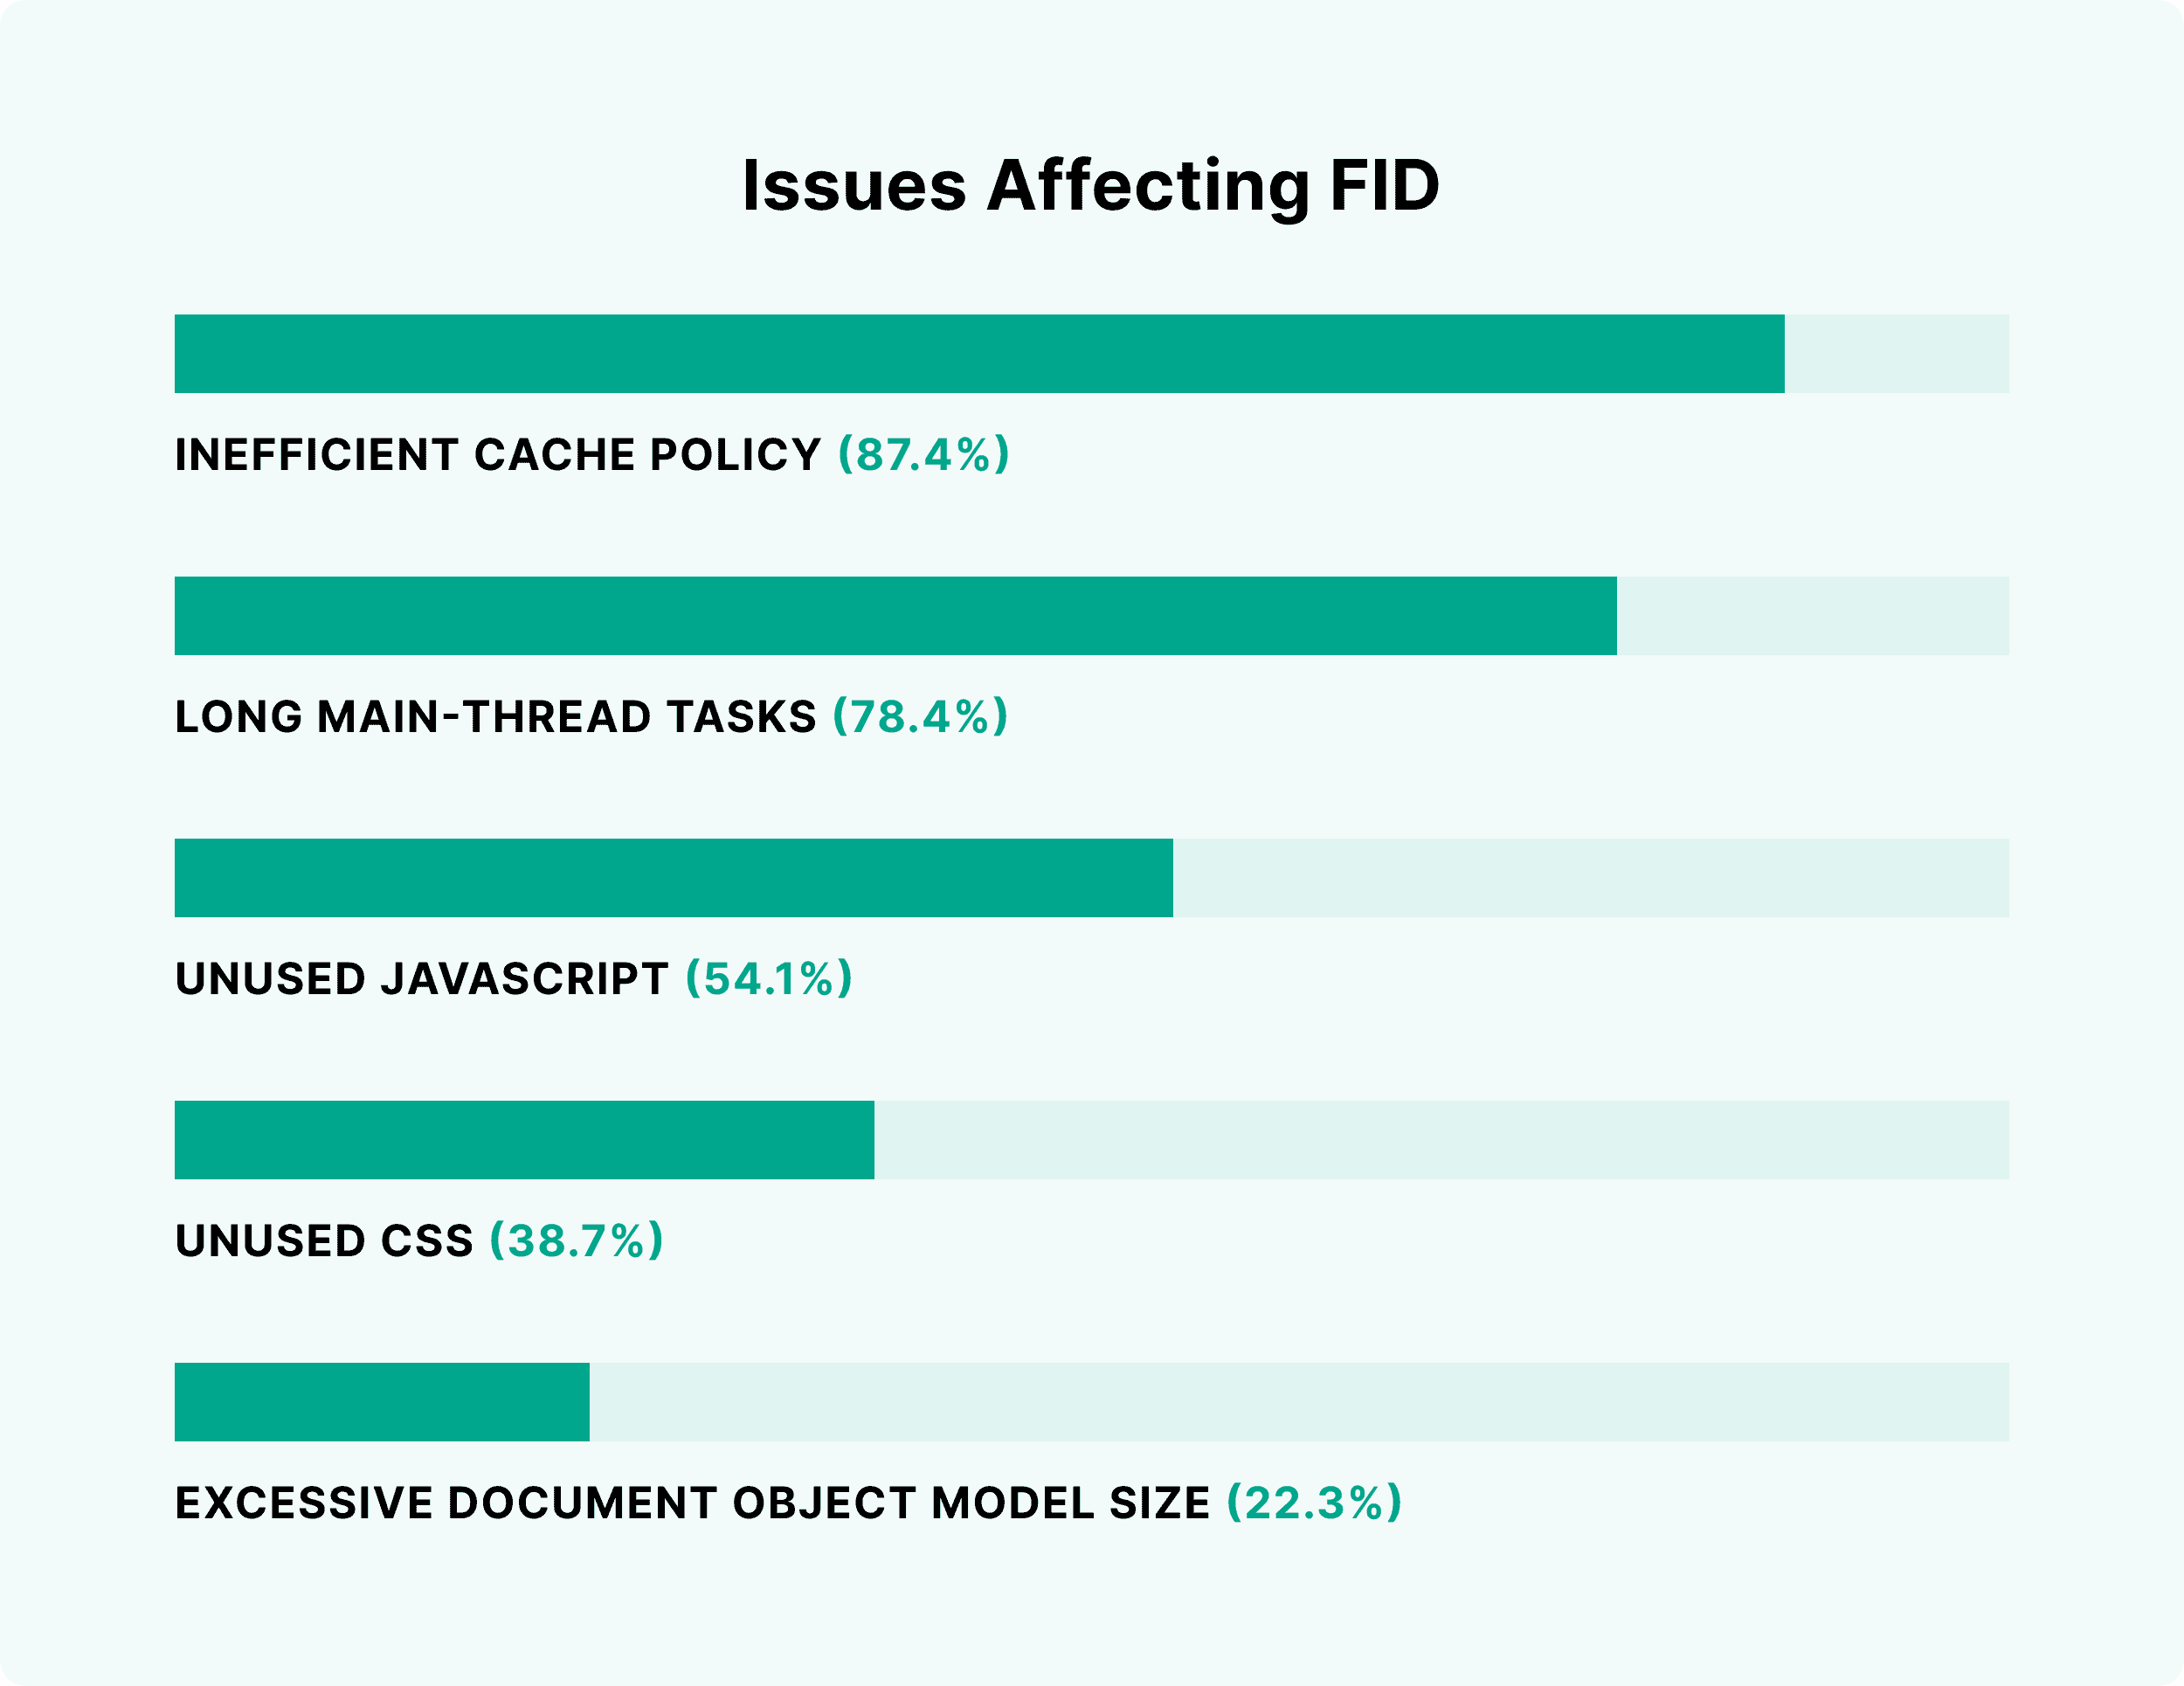 Issues affecting FID